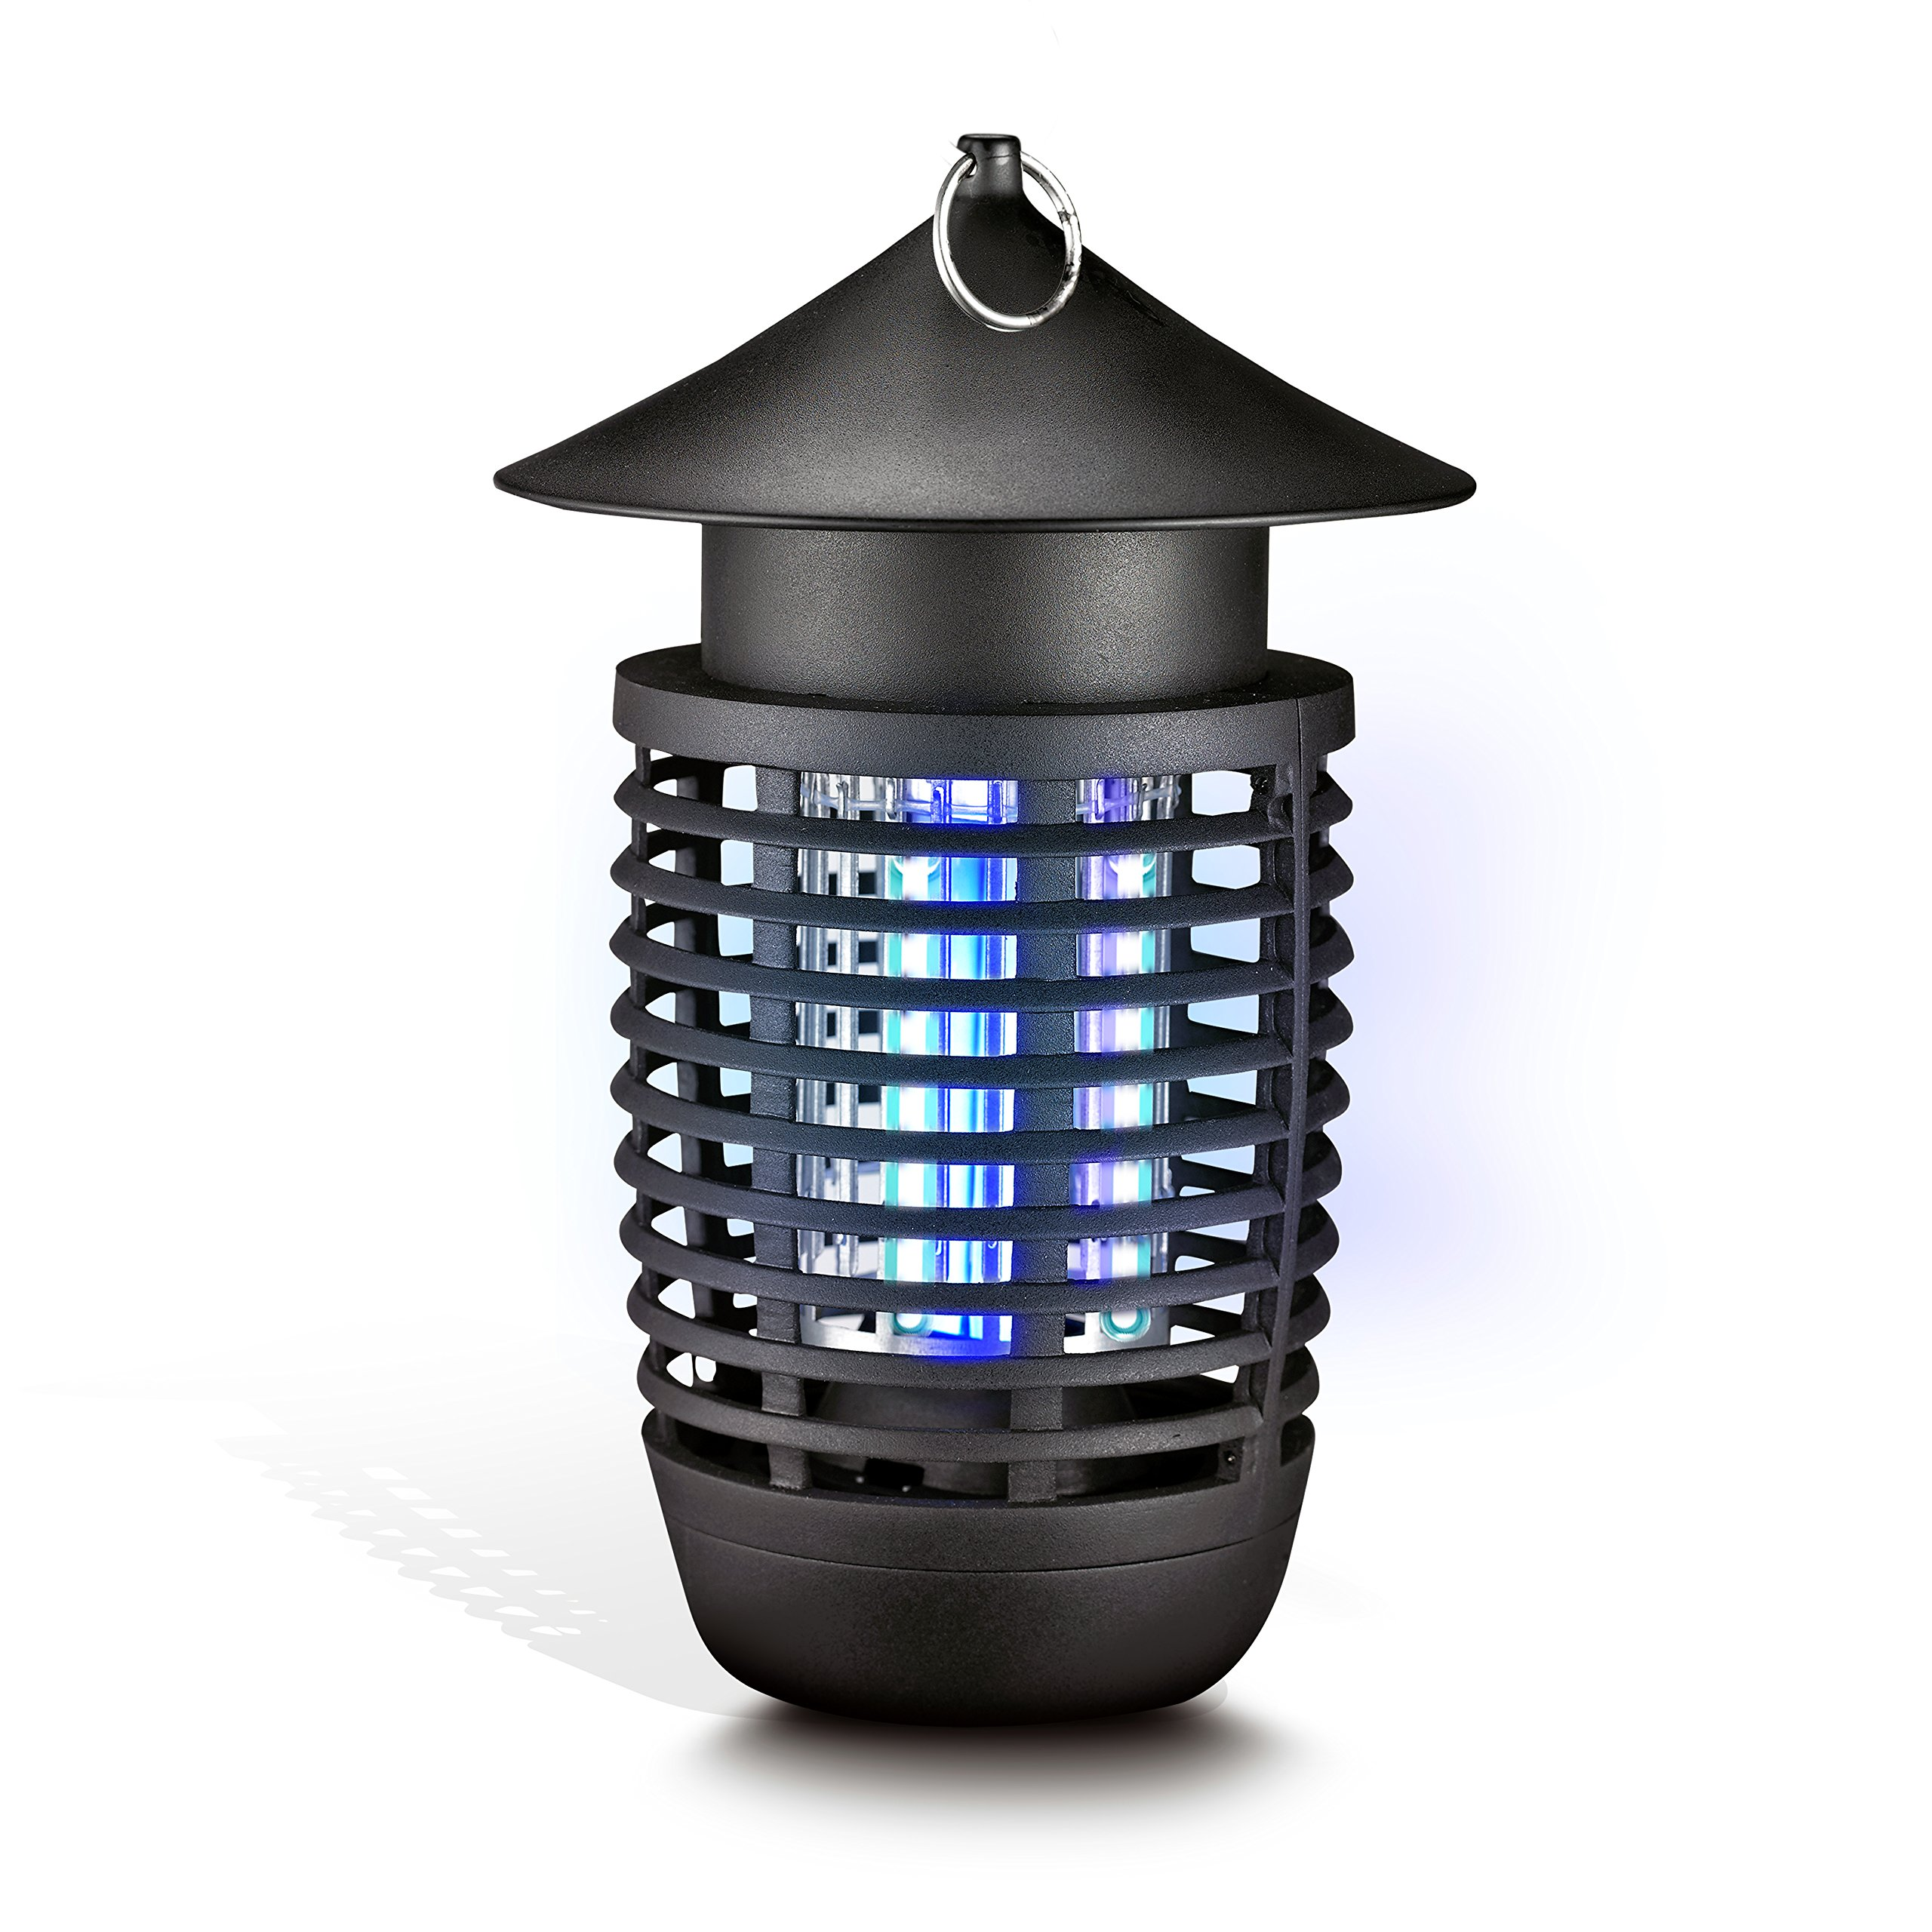 SereneLife Weatherproof Electric Bug Zapper - Hanging Insect Eliminator, Flying Bug Trap, Fly and Mosquito Killer - Electronic Plug In Lamp with UV Light - For Home, Indoor, and Outdoor Use - AZPSLBZ6